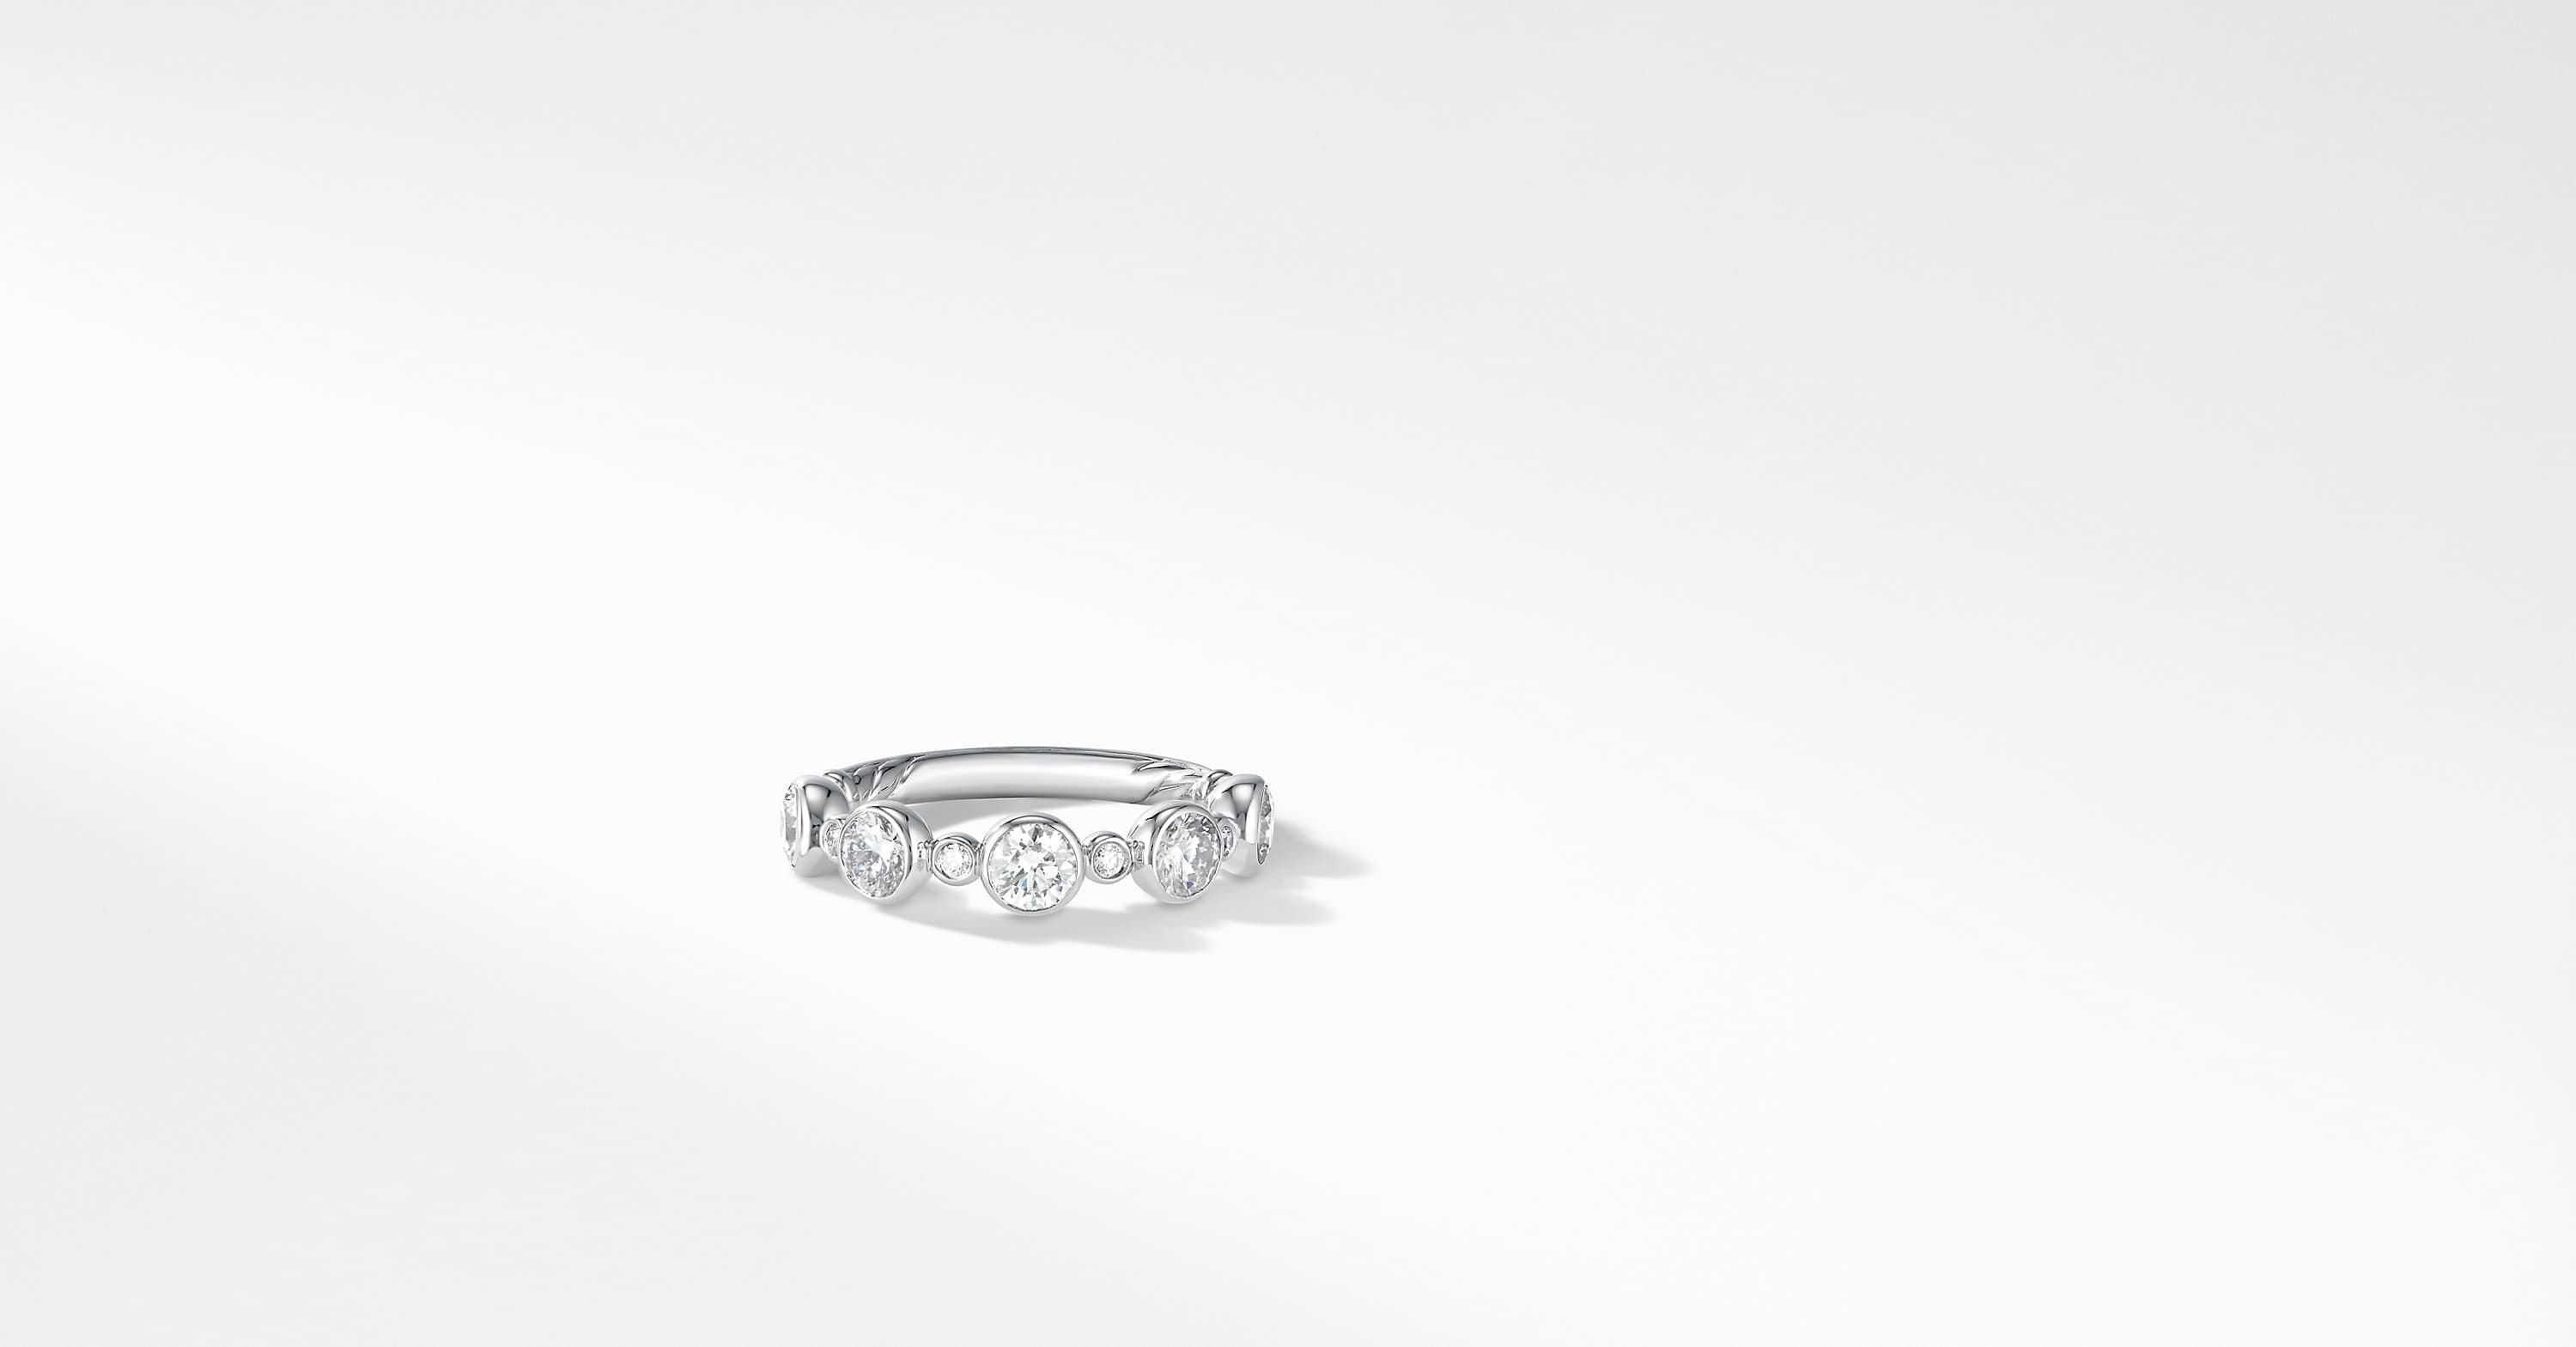 DY Starlight Pavé Band Ring with Diamonds in Platinum